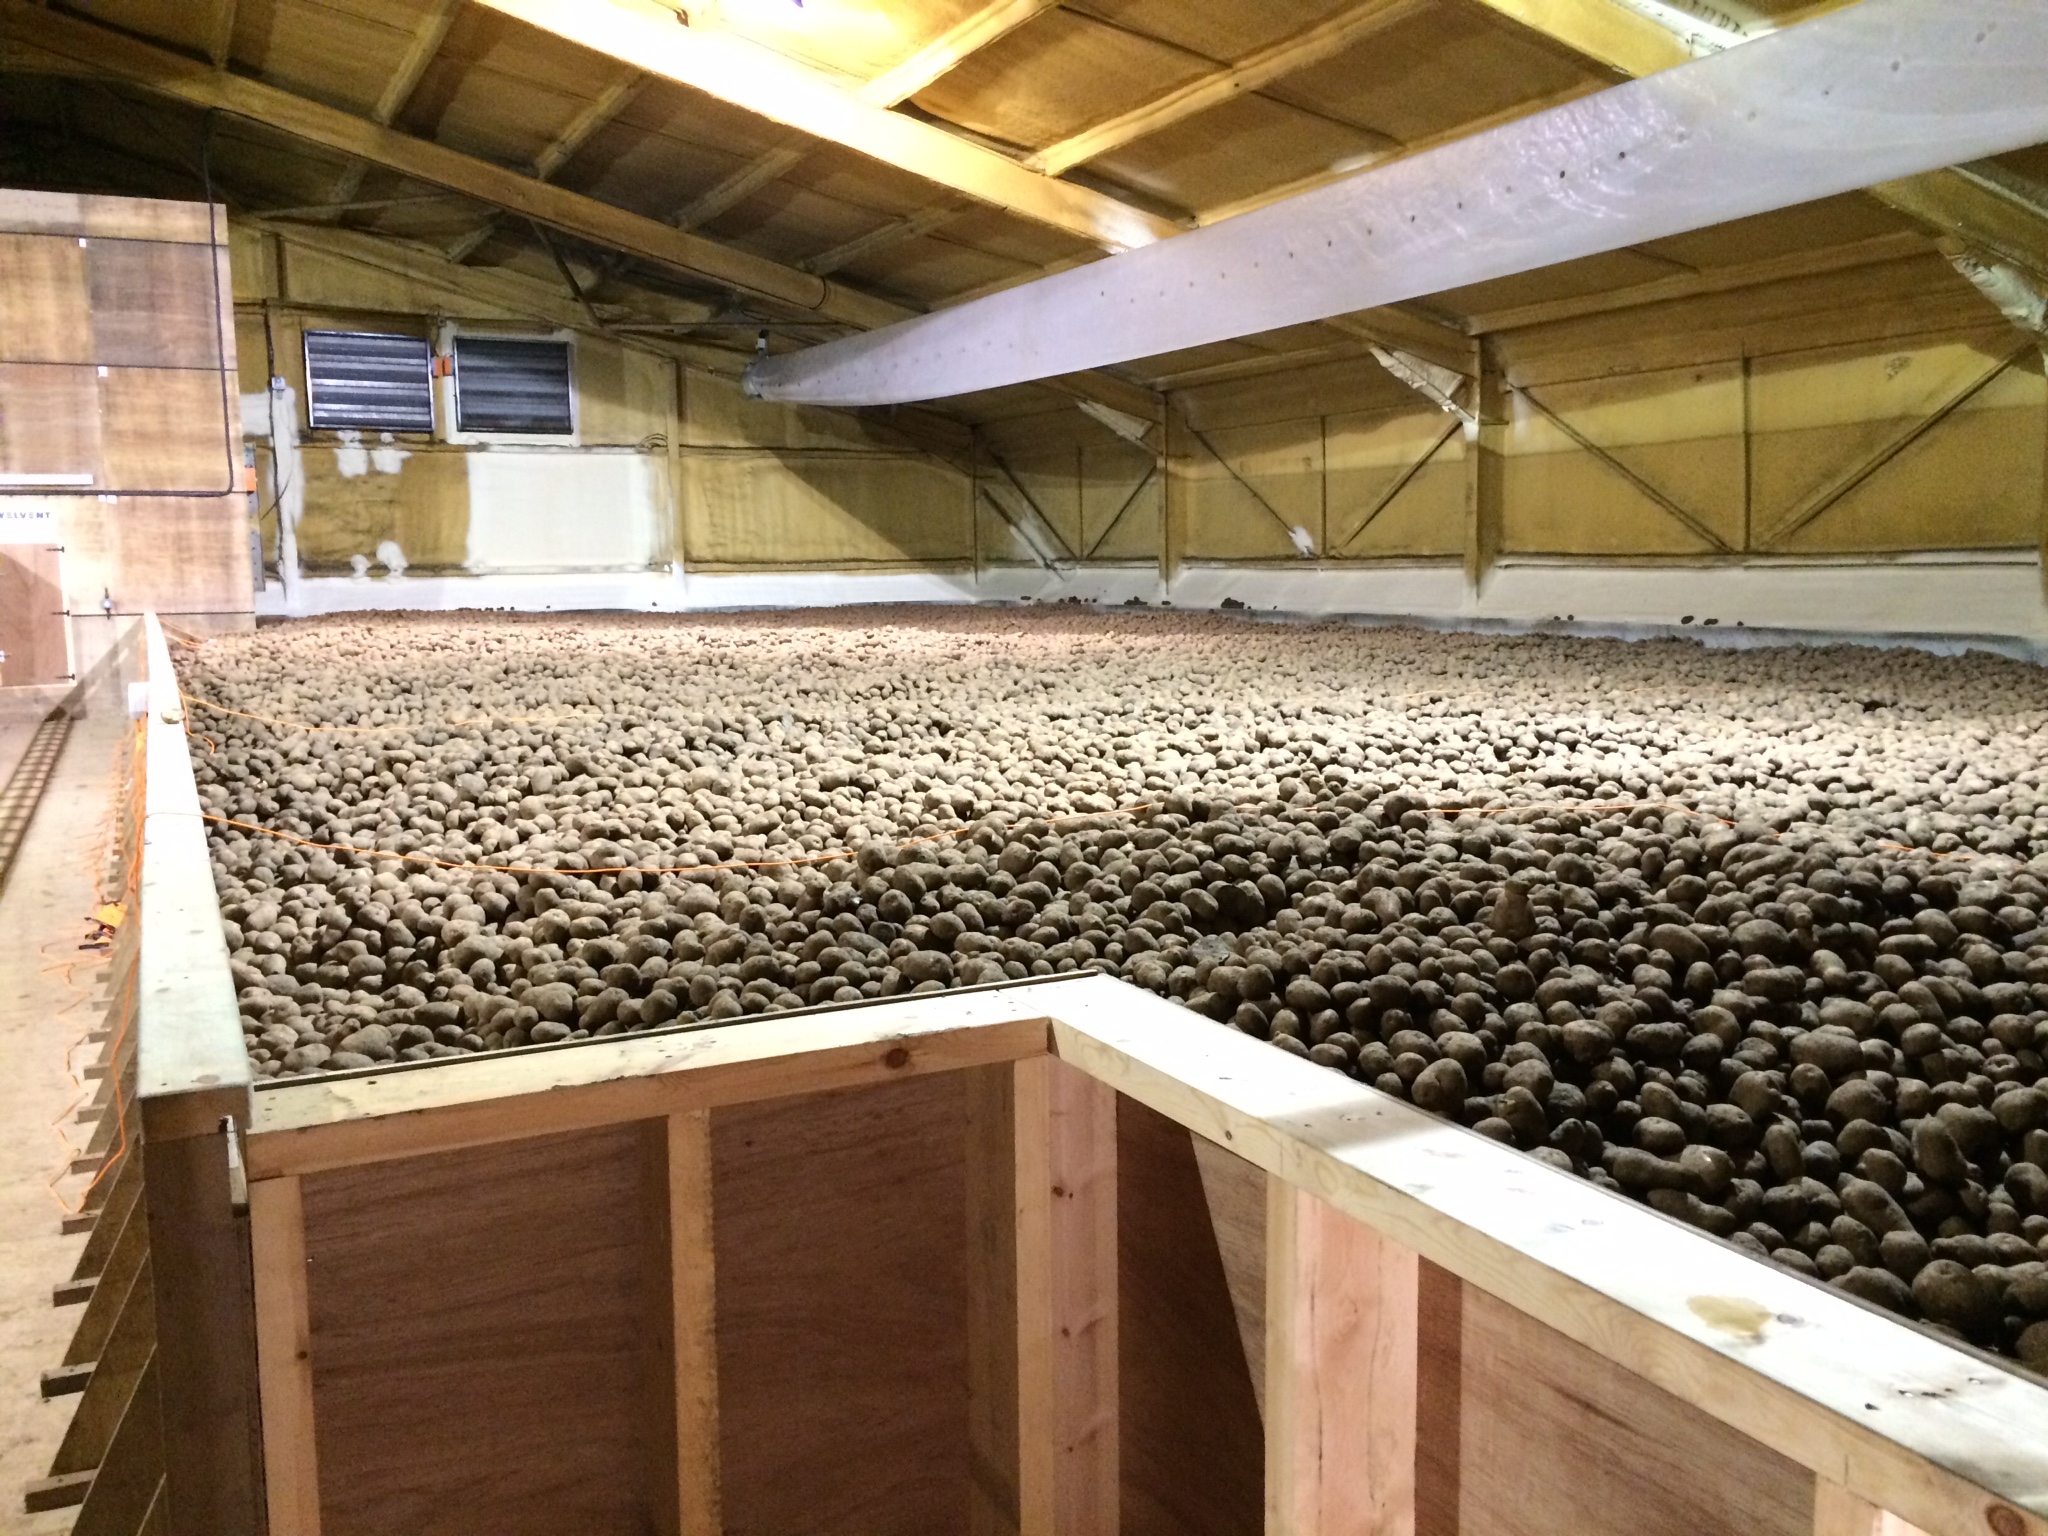 Bulk Potato Store Conversion